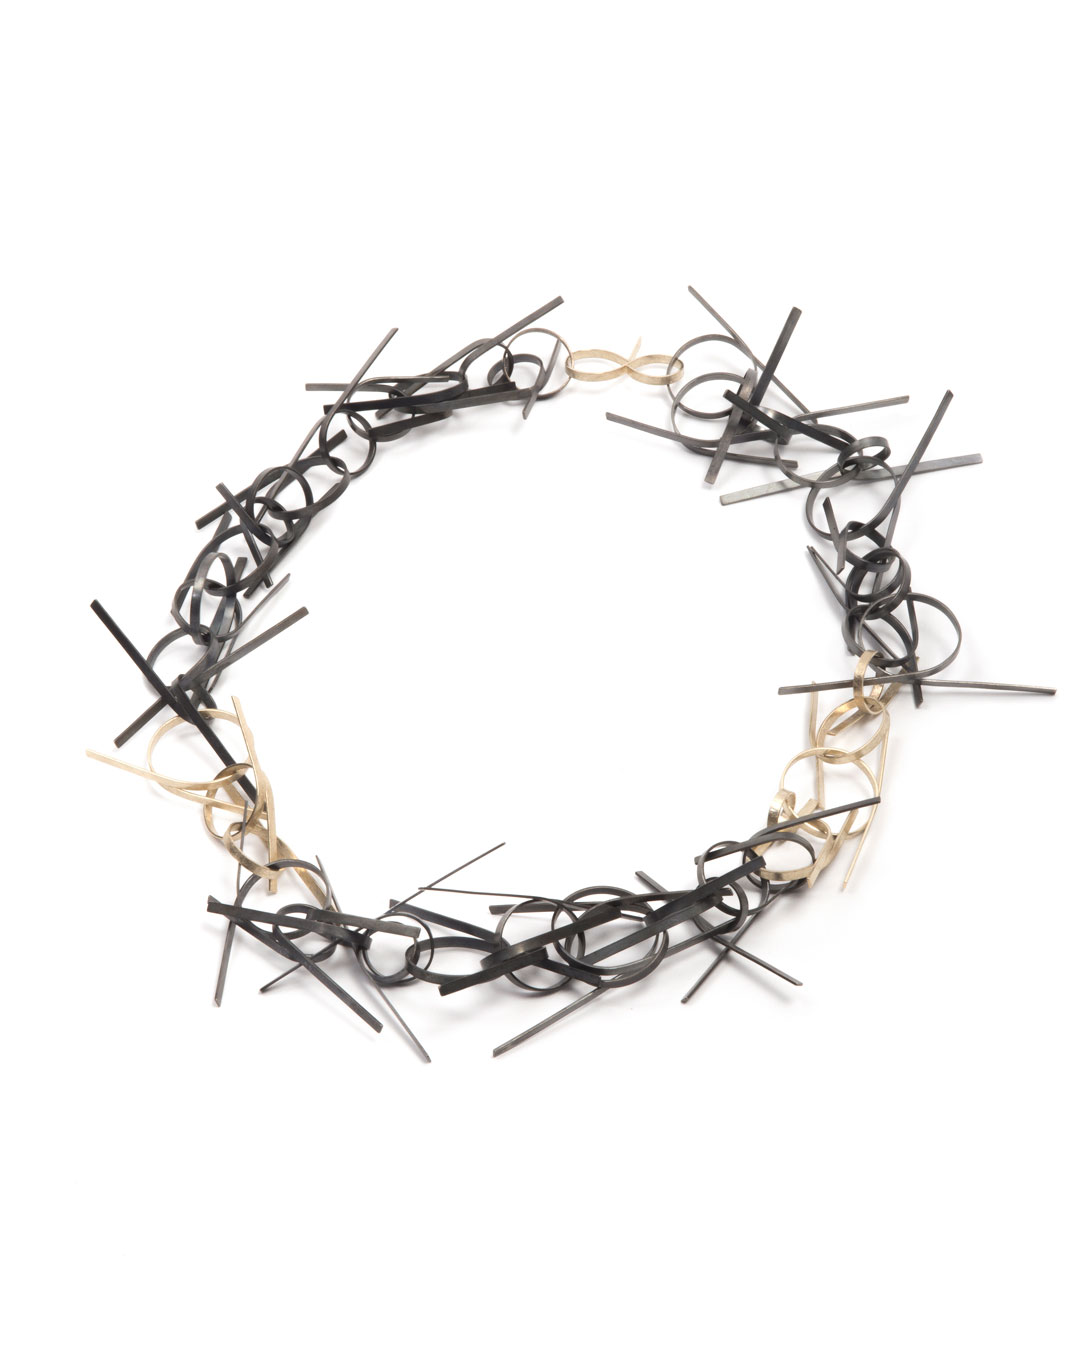 Karola Torkos, Tangled, 2019, necklace; recycled gold, recycled and patinated silver, 235 x 280 x 20 mm, €3400